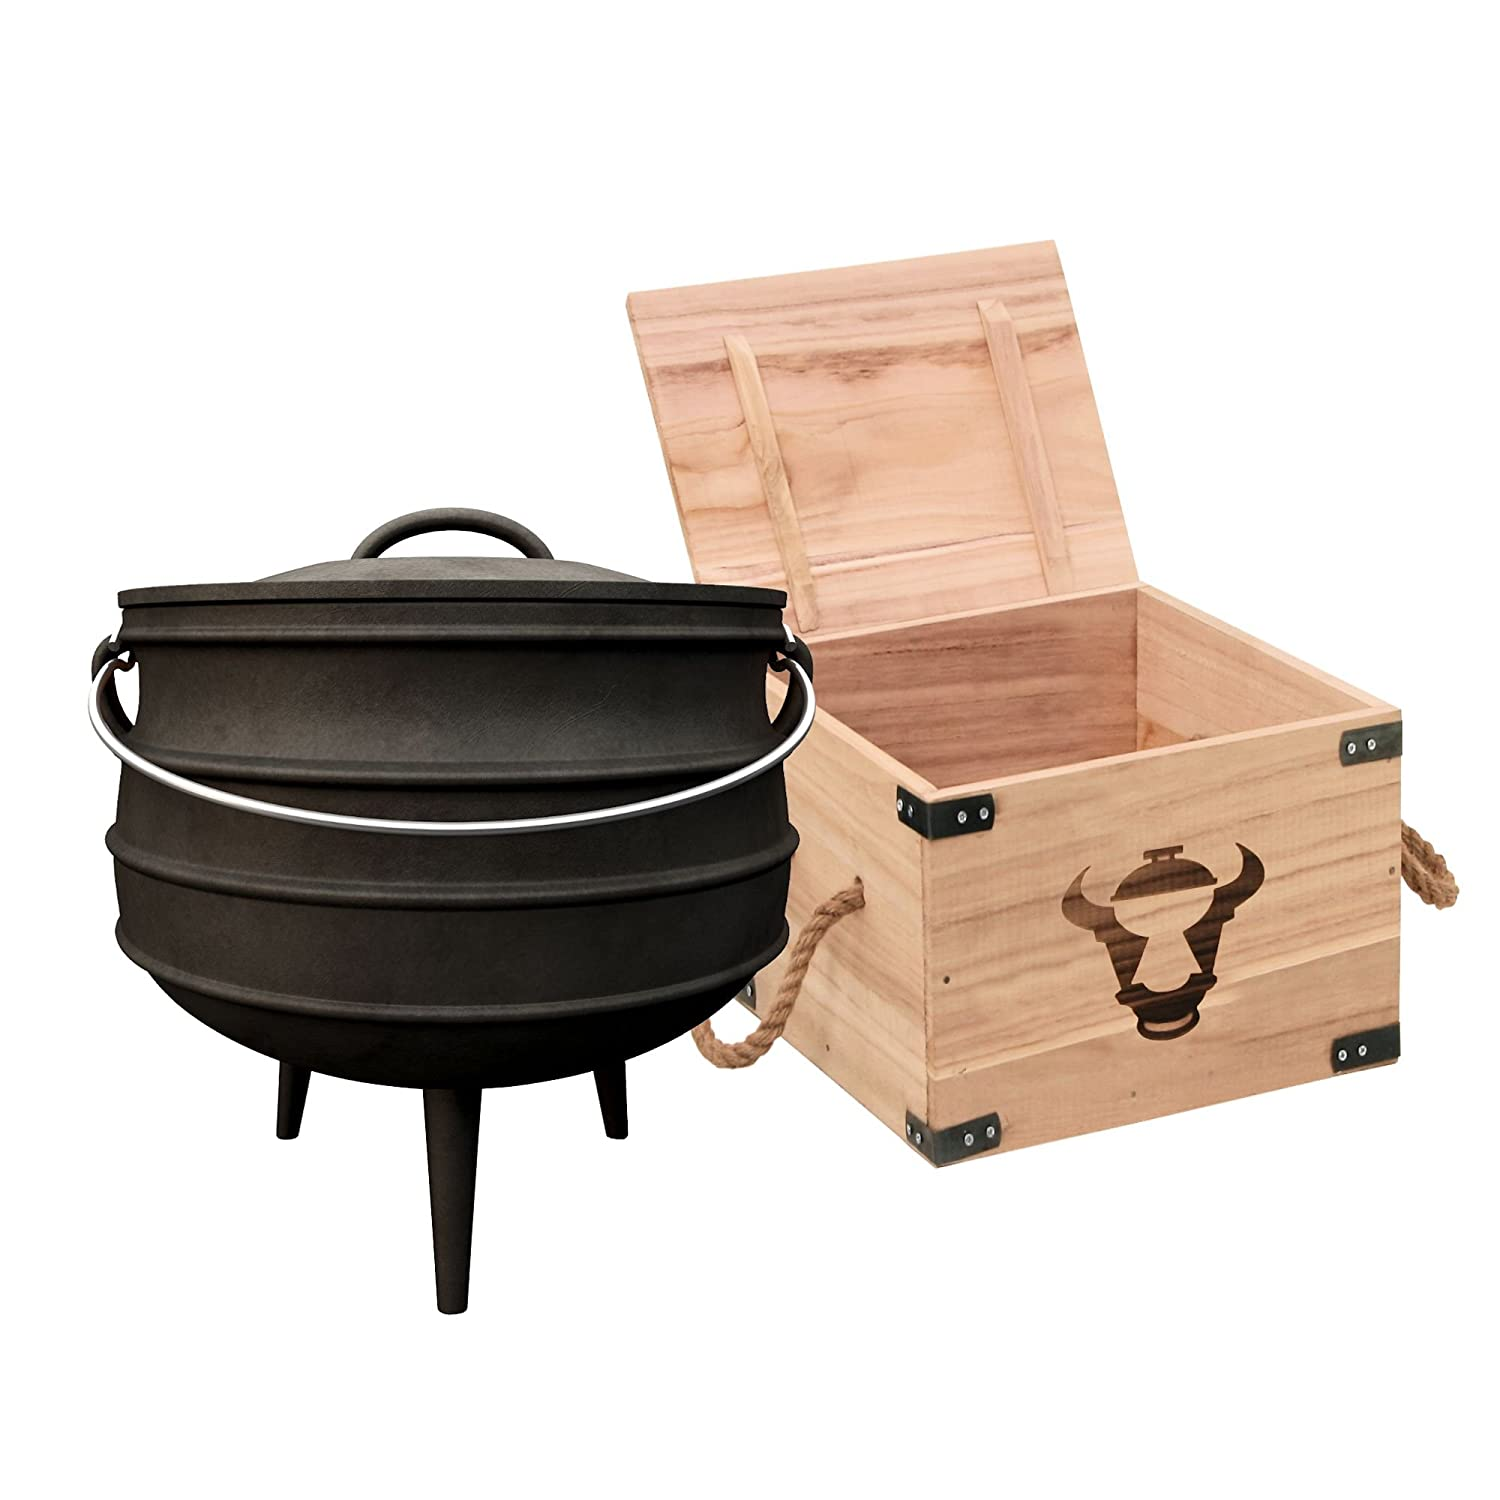 Cast Iron Potjie # 3 – Cooking Pot in Wooden Box – approx. 8 L, South African Dutch Oven cs-trading